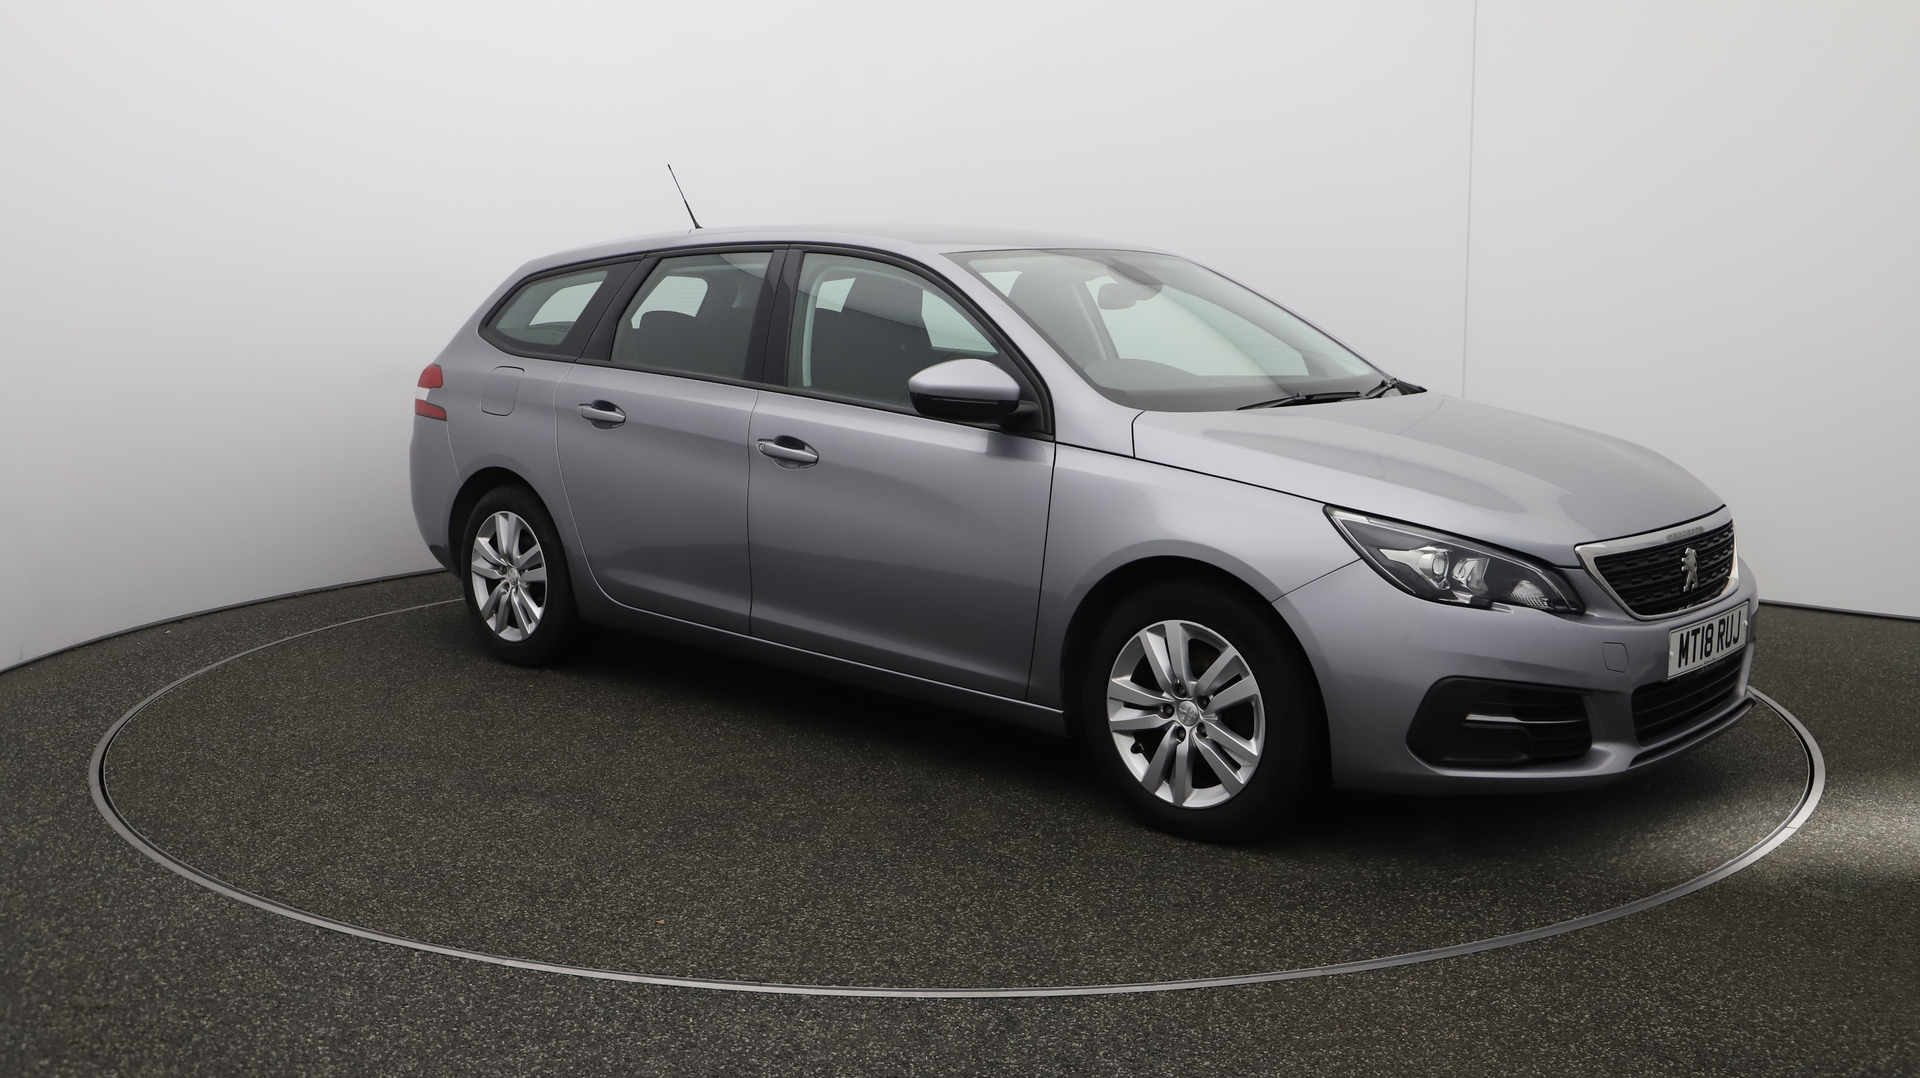 Peugeot 308 BLUE HDI S/S SW ACTIVE Service History